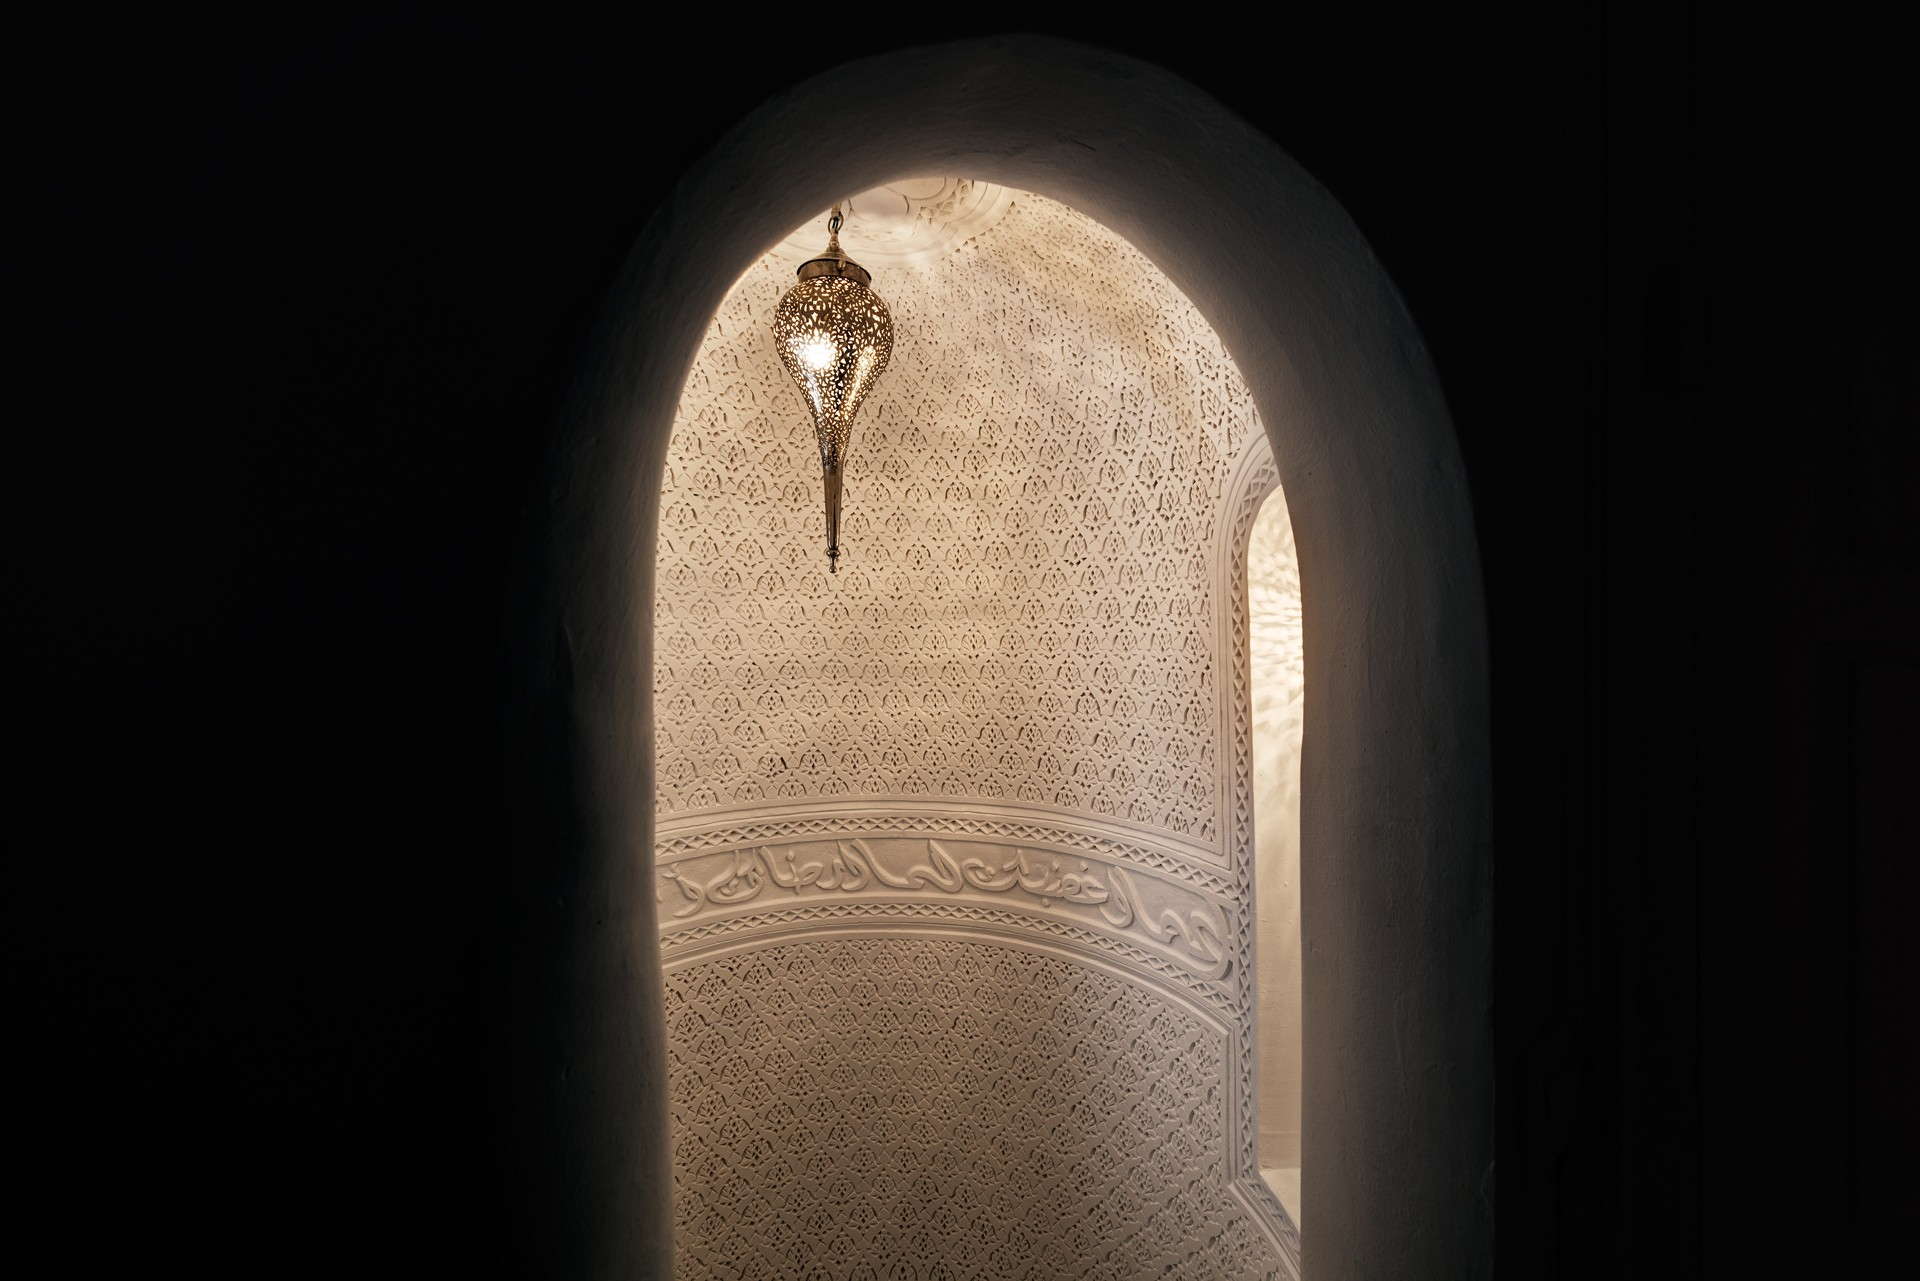 meditation pod star riad marrakech